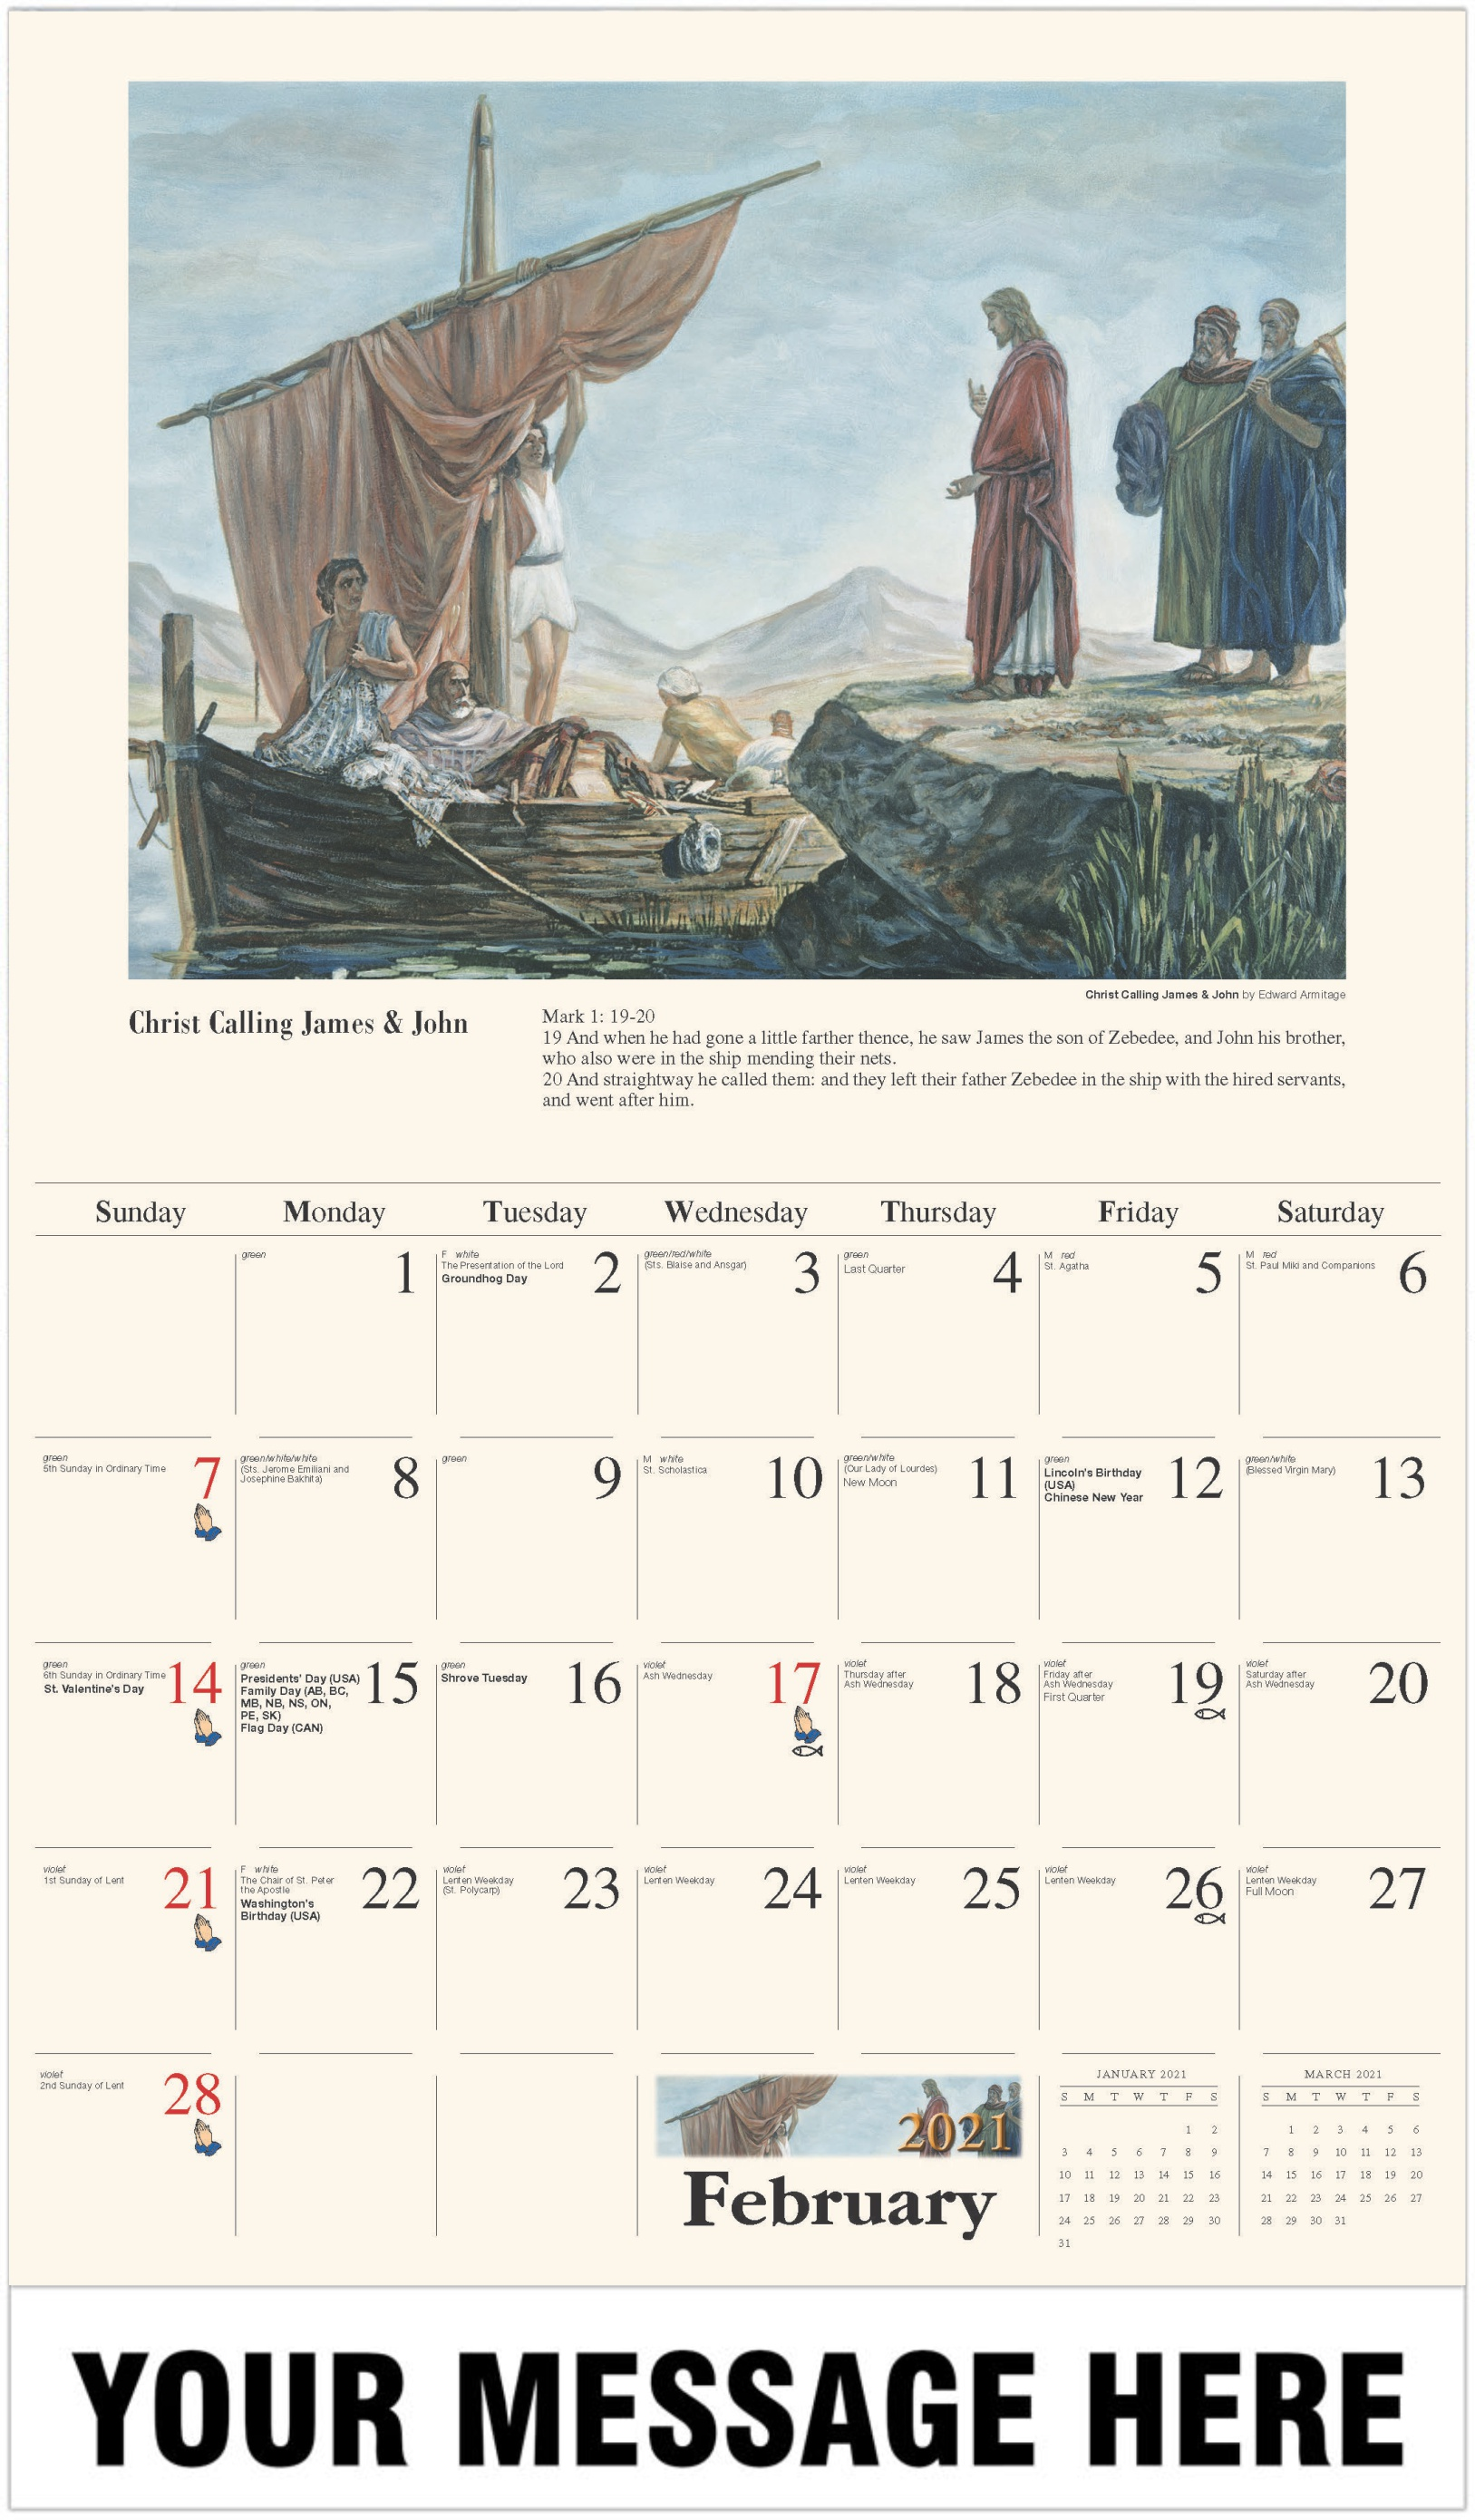 Christ Calling James & John - February - Catholic Inspiration 2021 Promotional Calendar